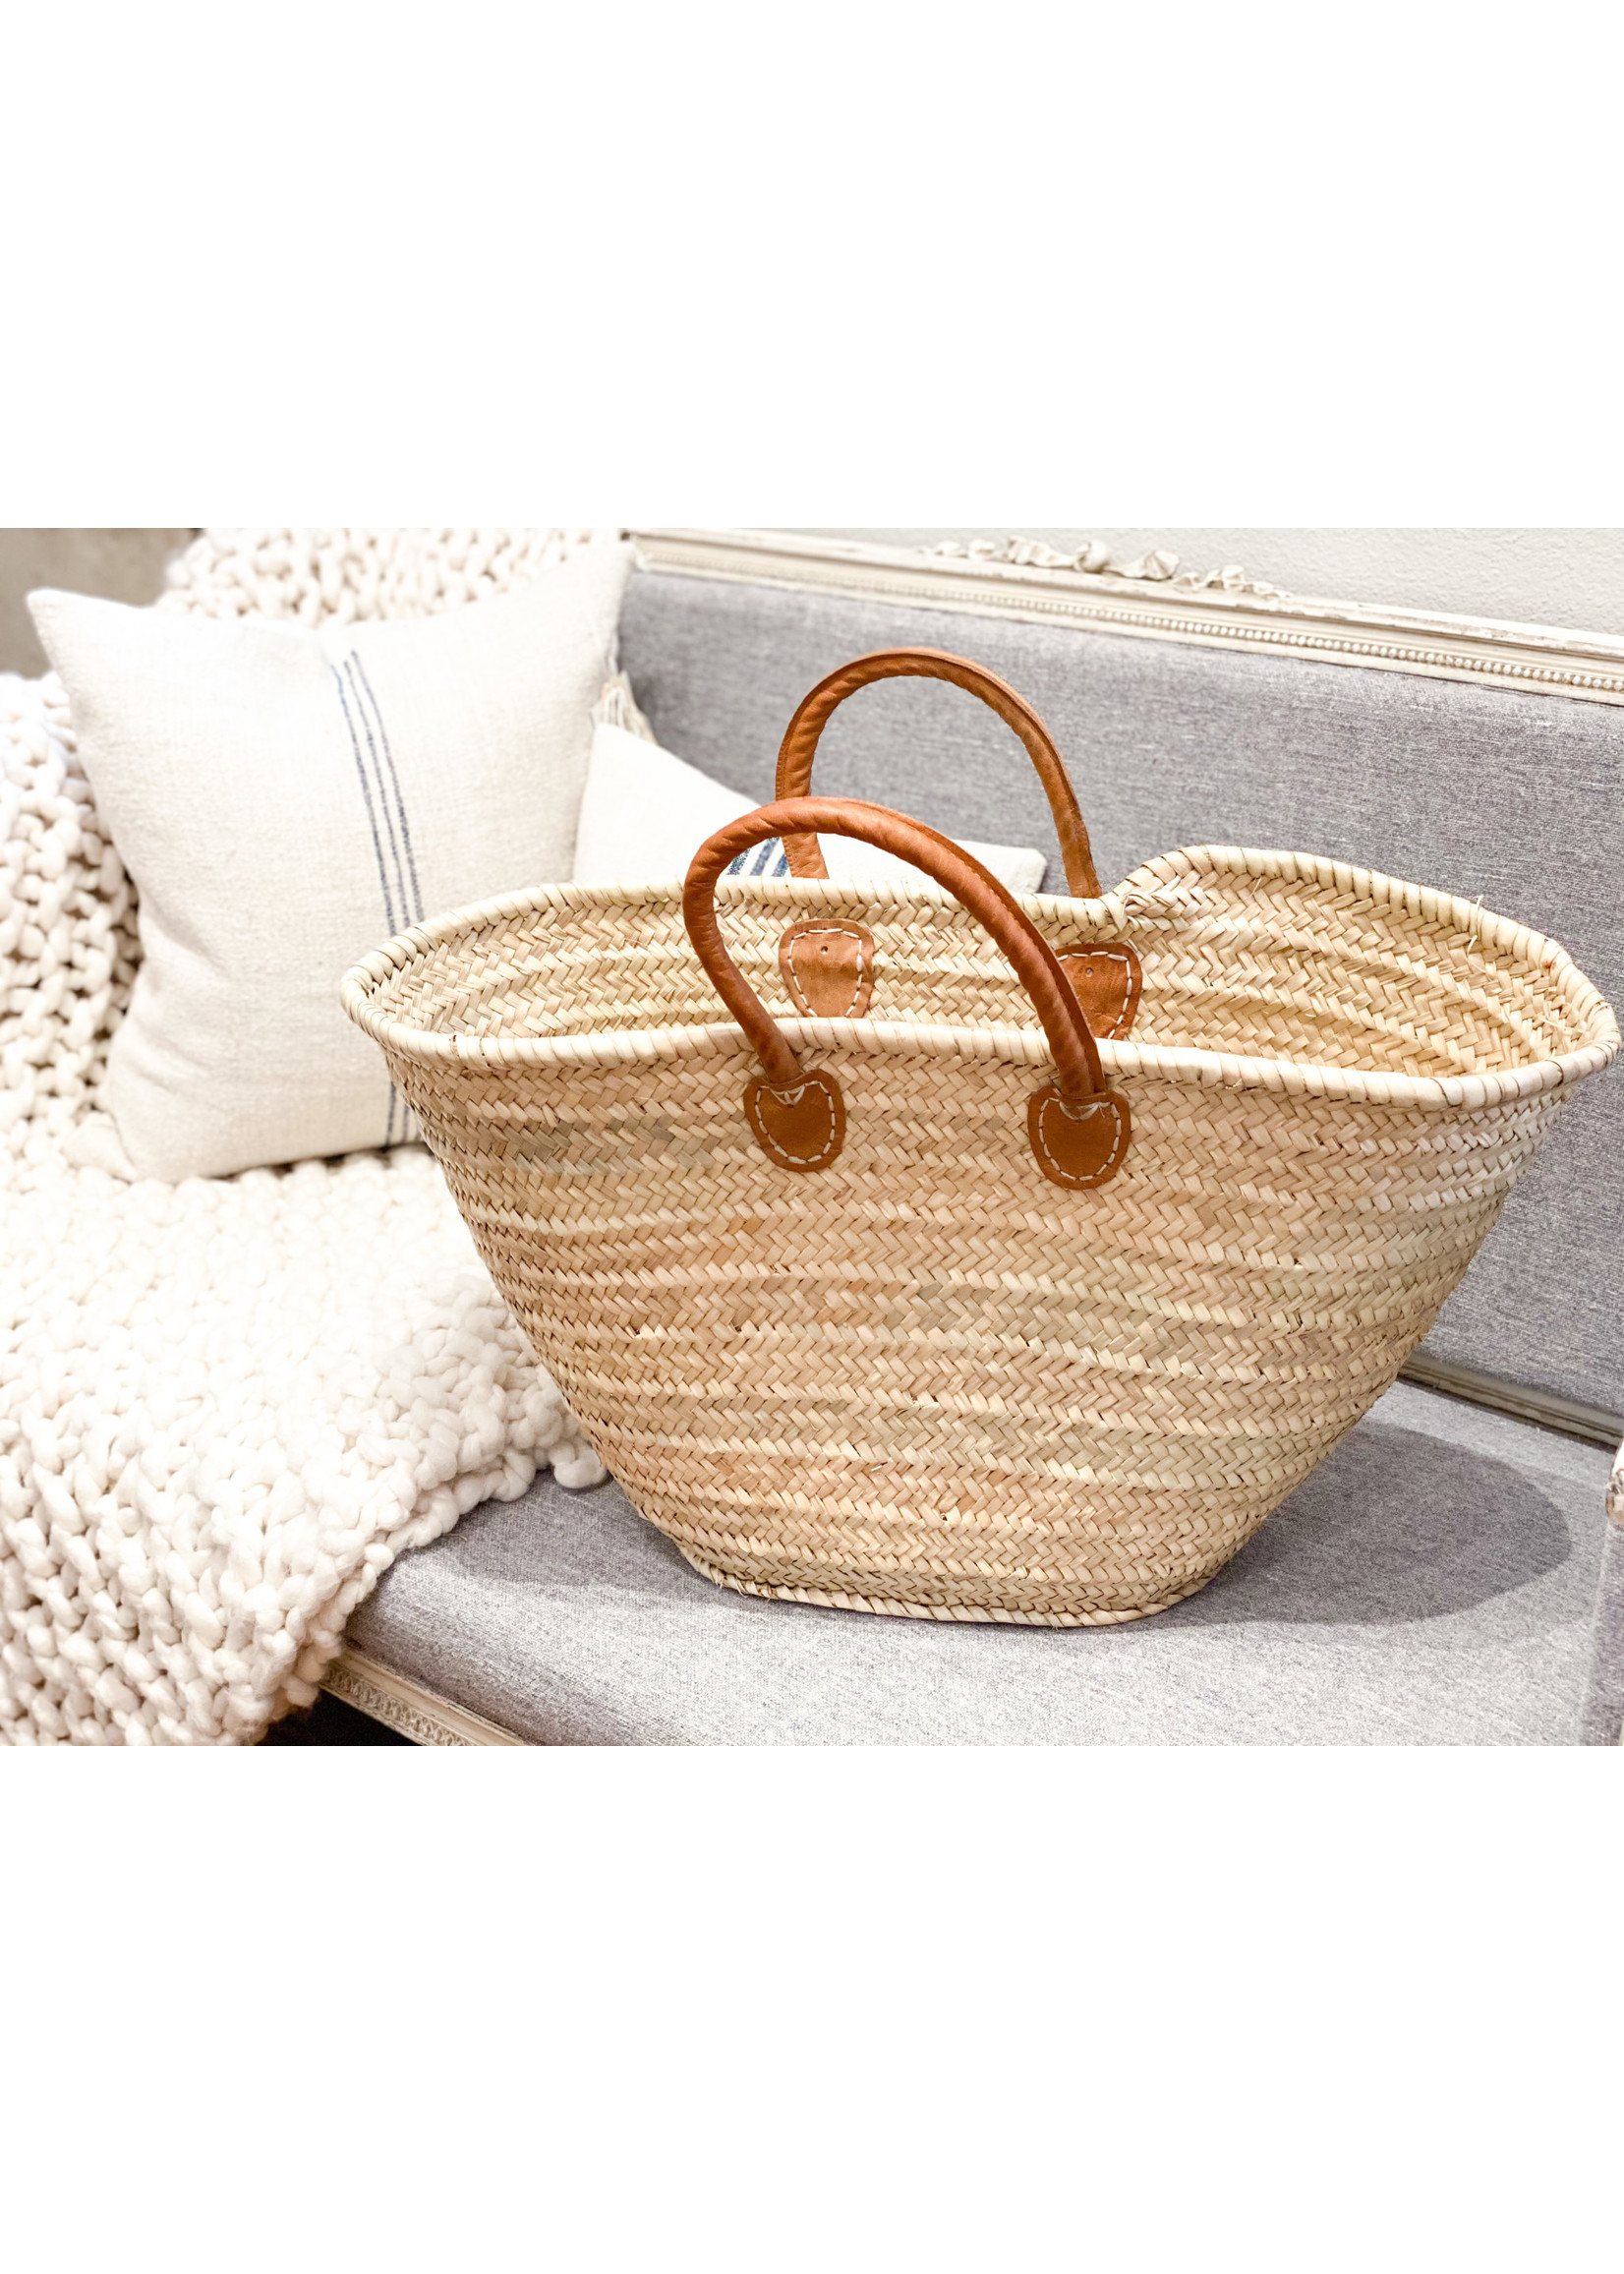 French Market Tote - Palermo Basket